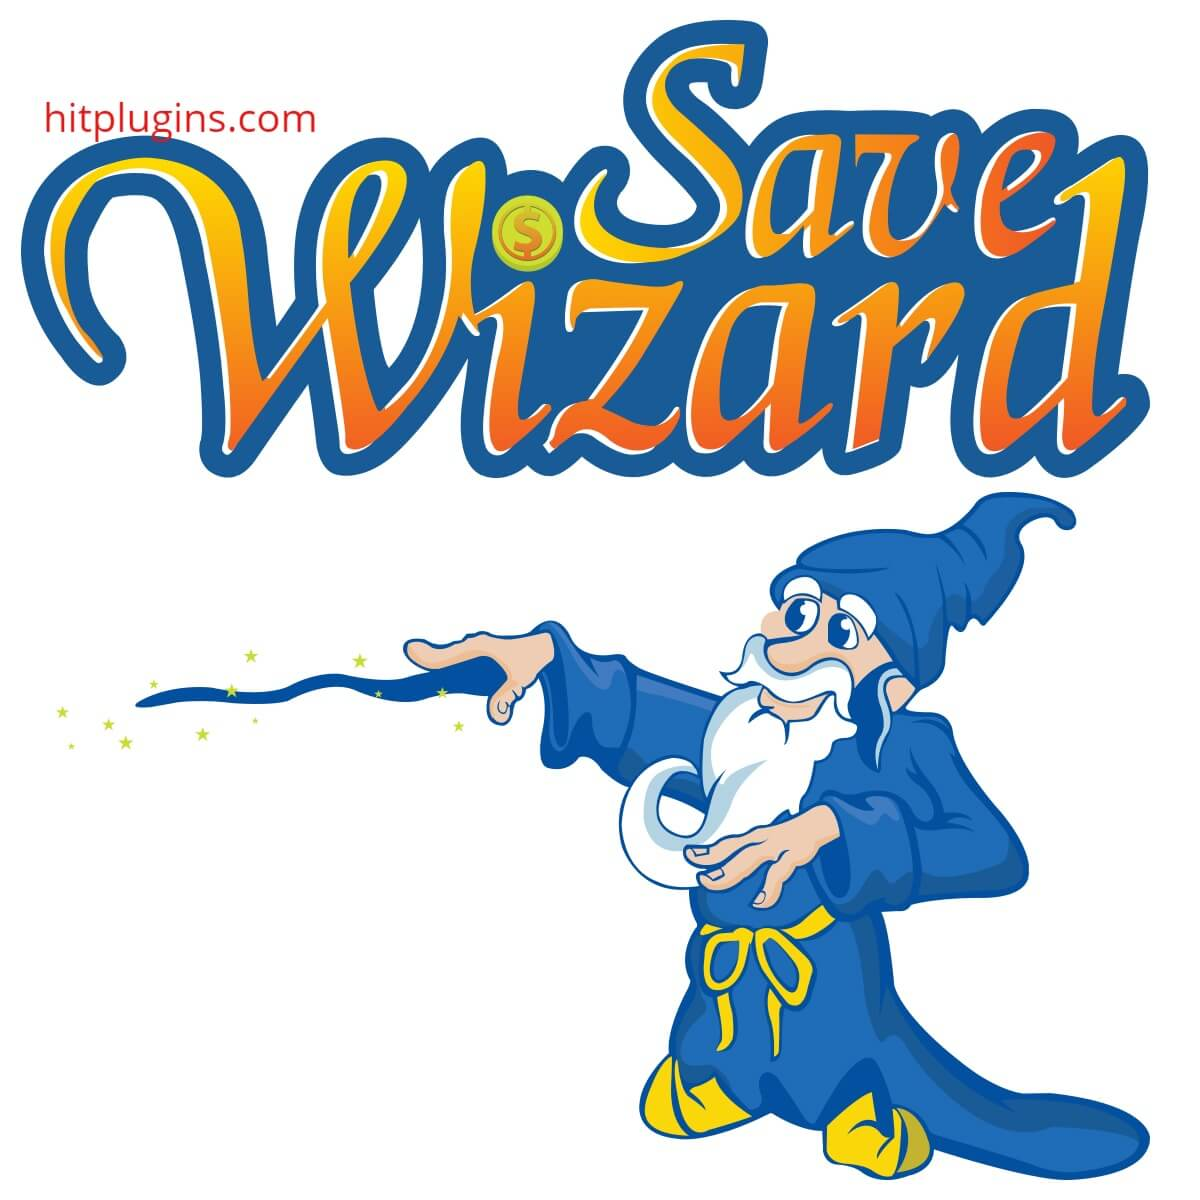 Save Wizard Cracked